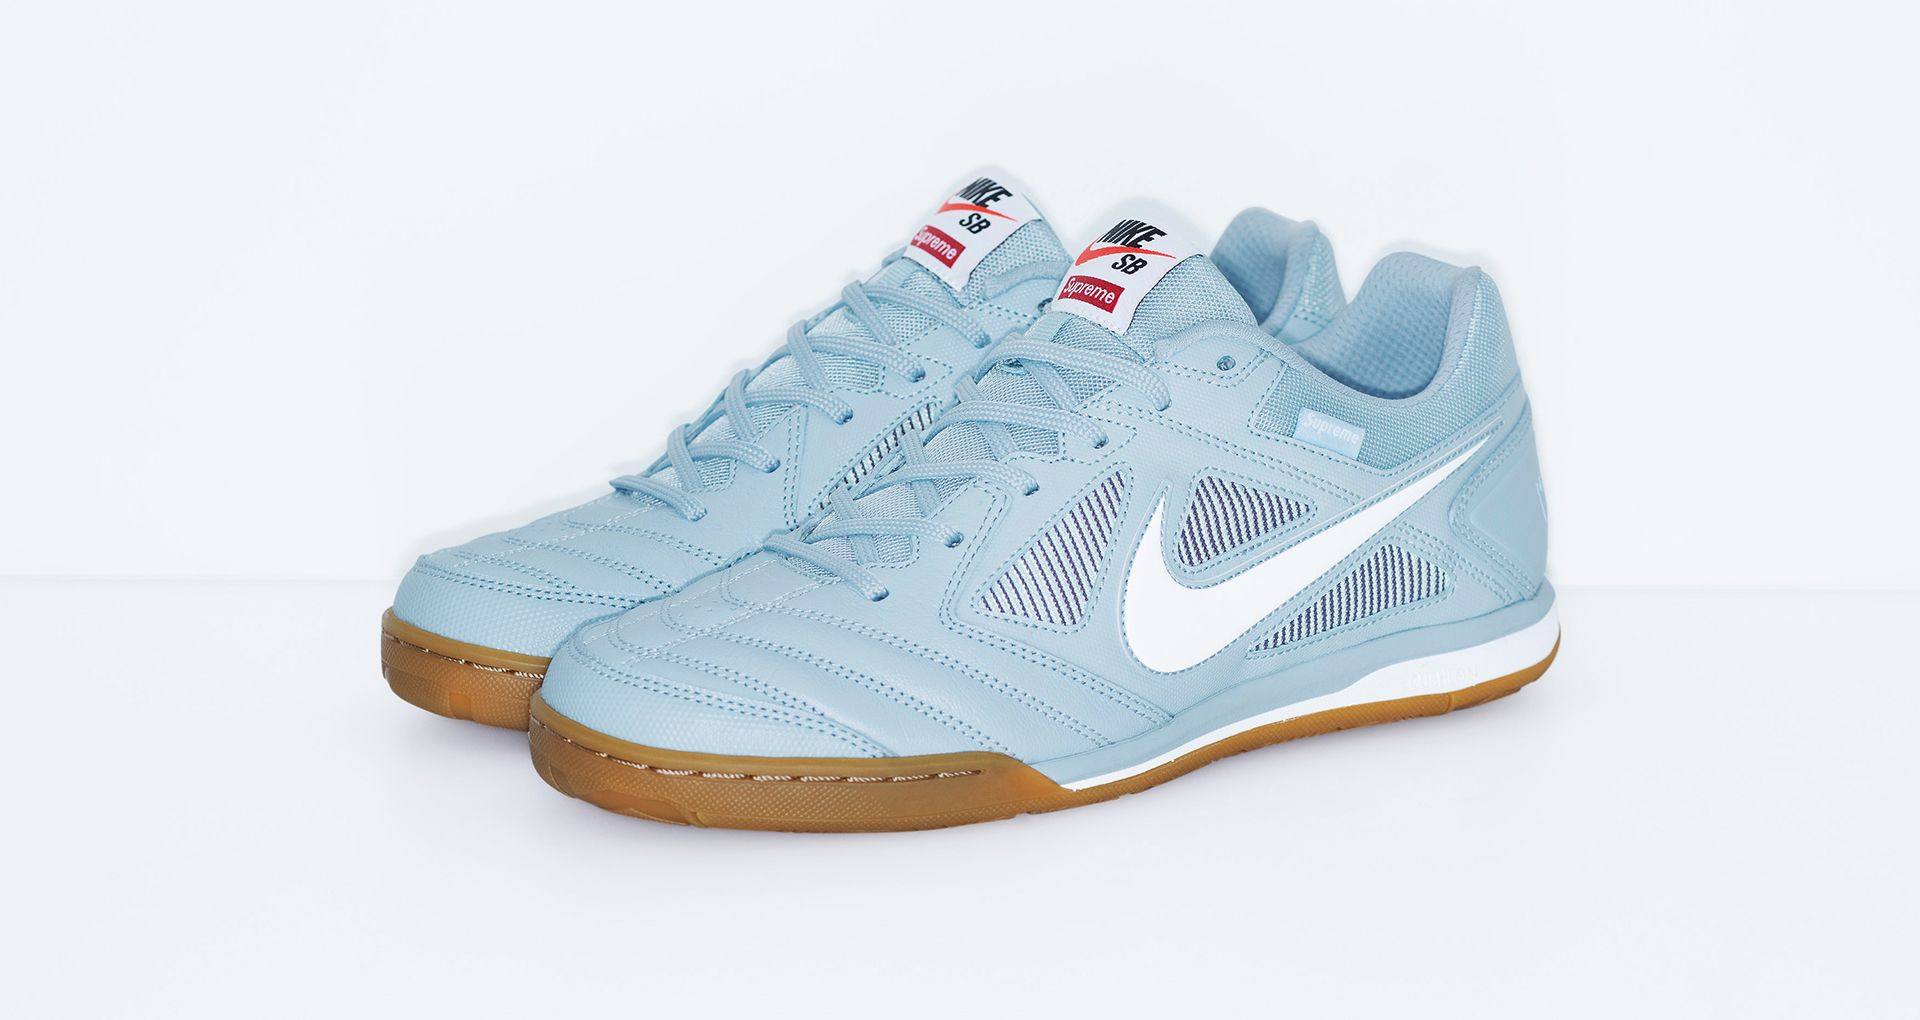 best wholesaler great fit cheap for sale Nike SB Gato Qs Supreme 'Light Armory Blue & White' Release ...